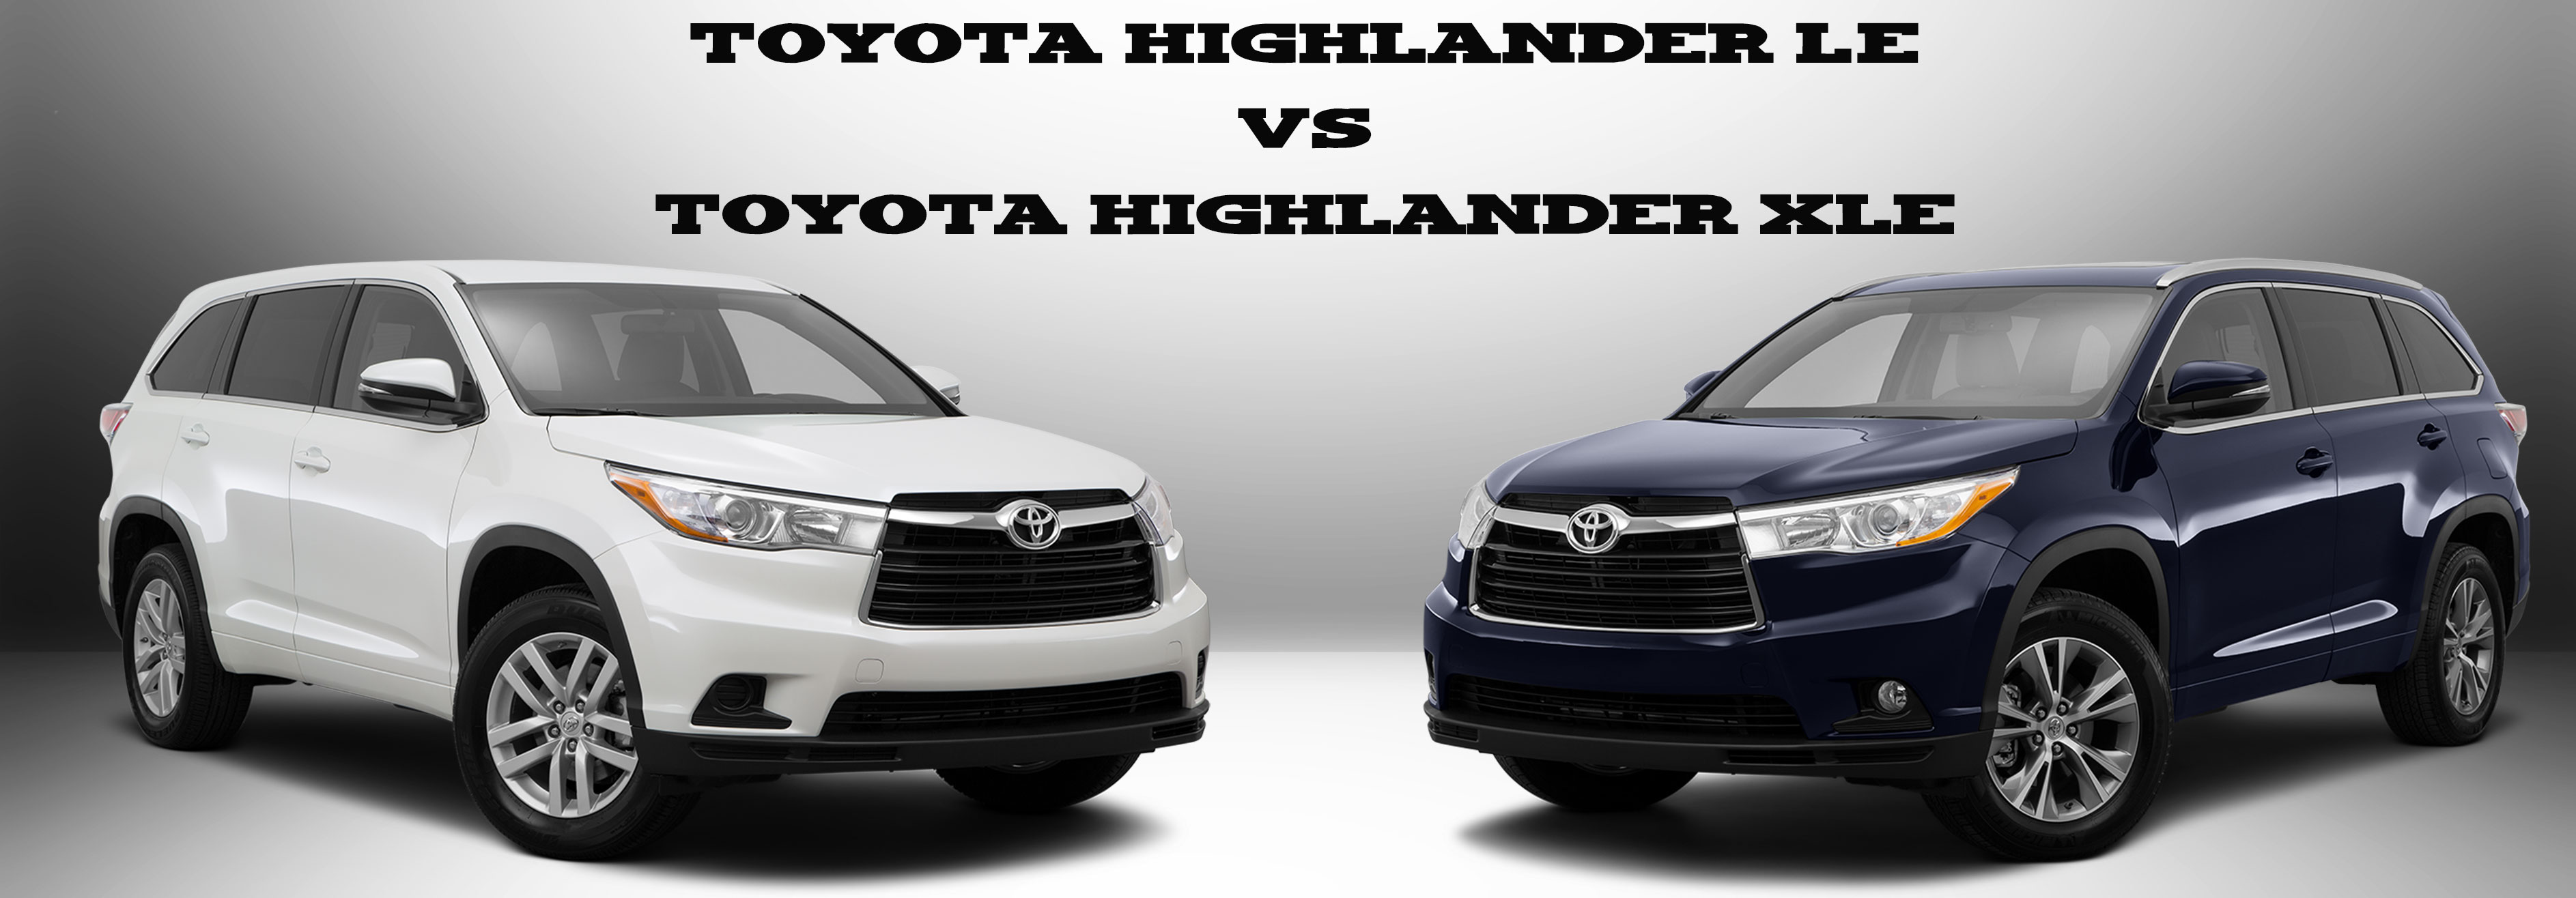 toyota highlander le vs toyota highlander xle limbaugh. Black Bedroom Furniture Sets. Home Design Ideas